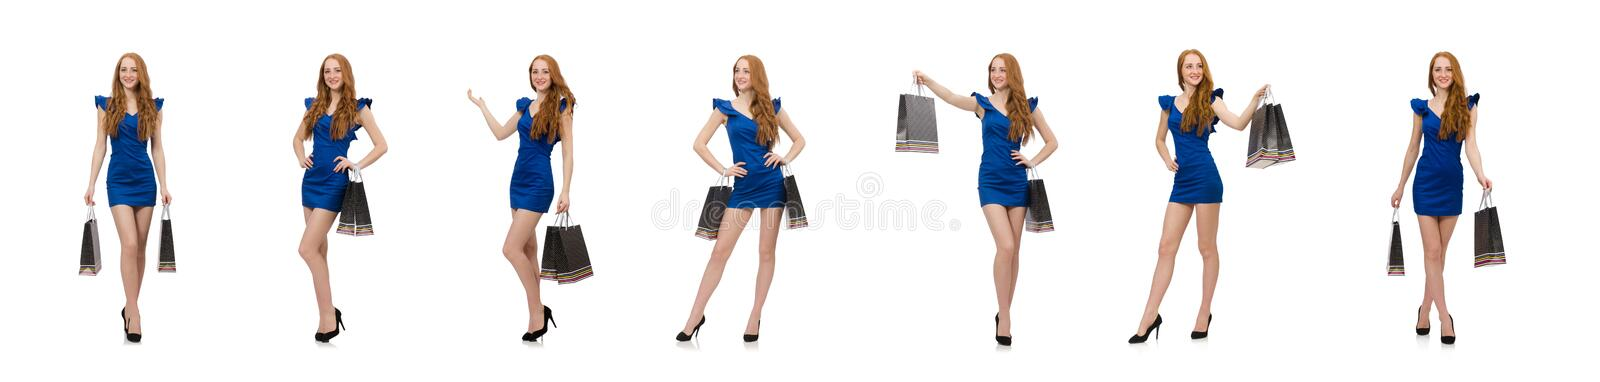 Beautiful lady in dark blue dress isolated on white royalty free stock image